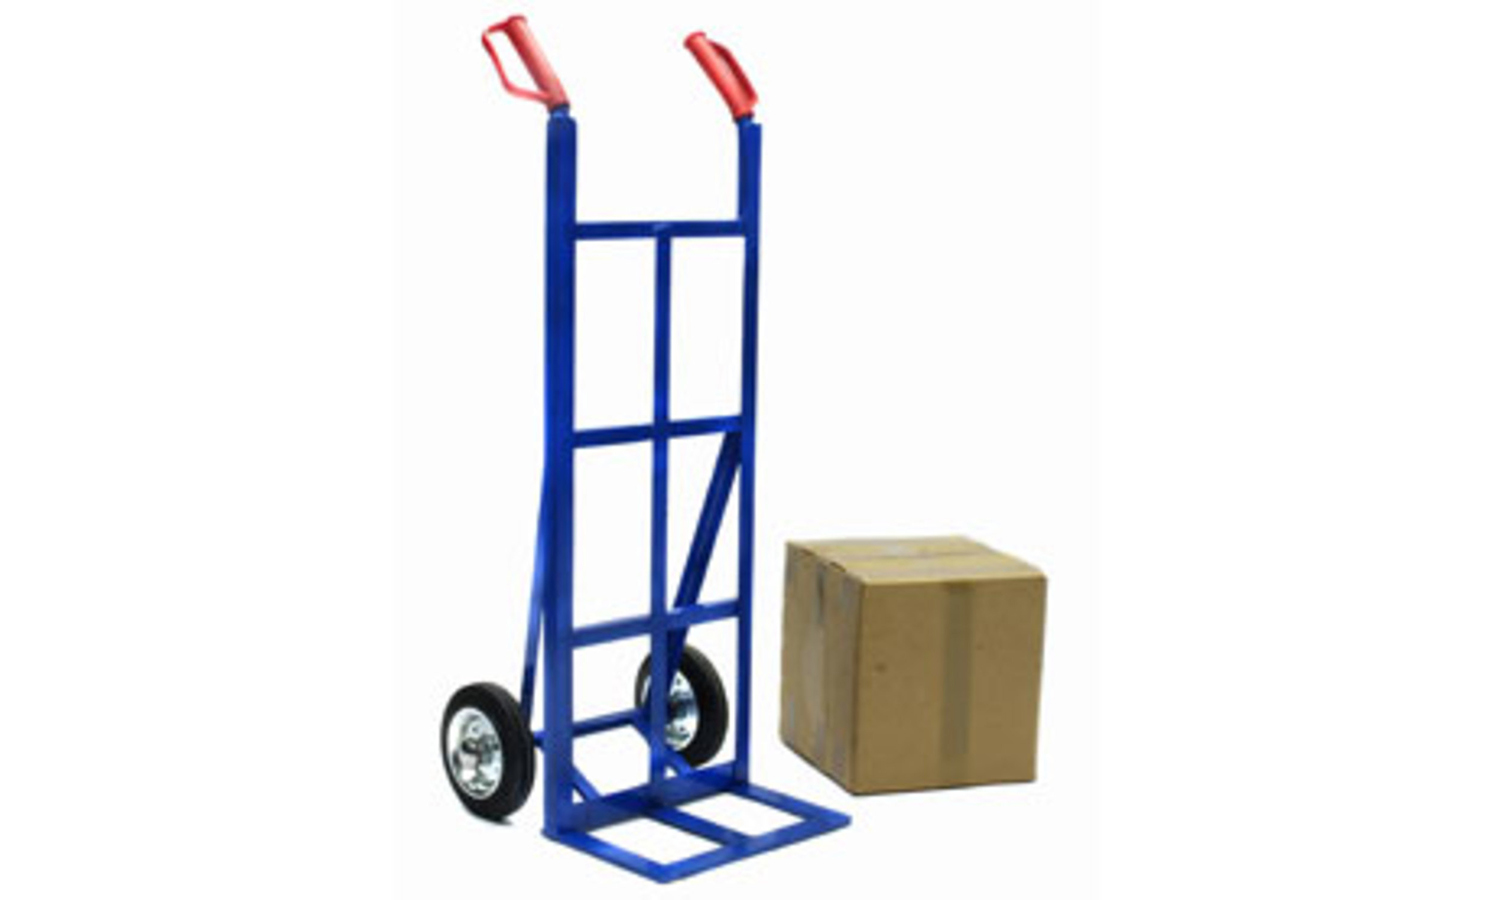 Sack Truck product page image